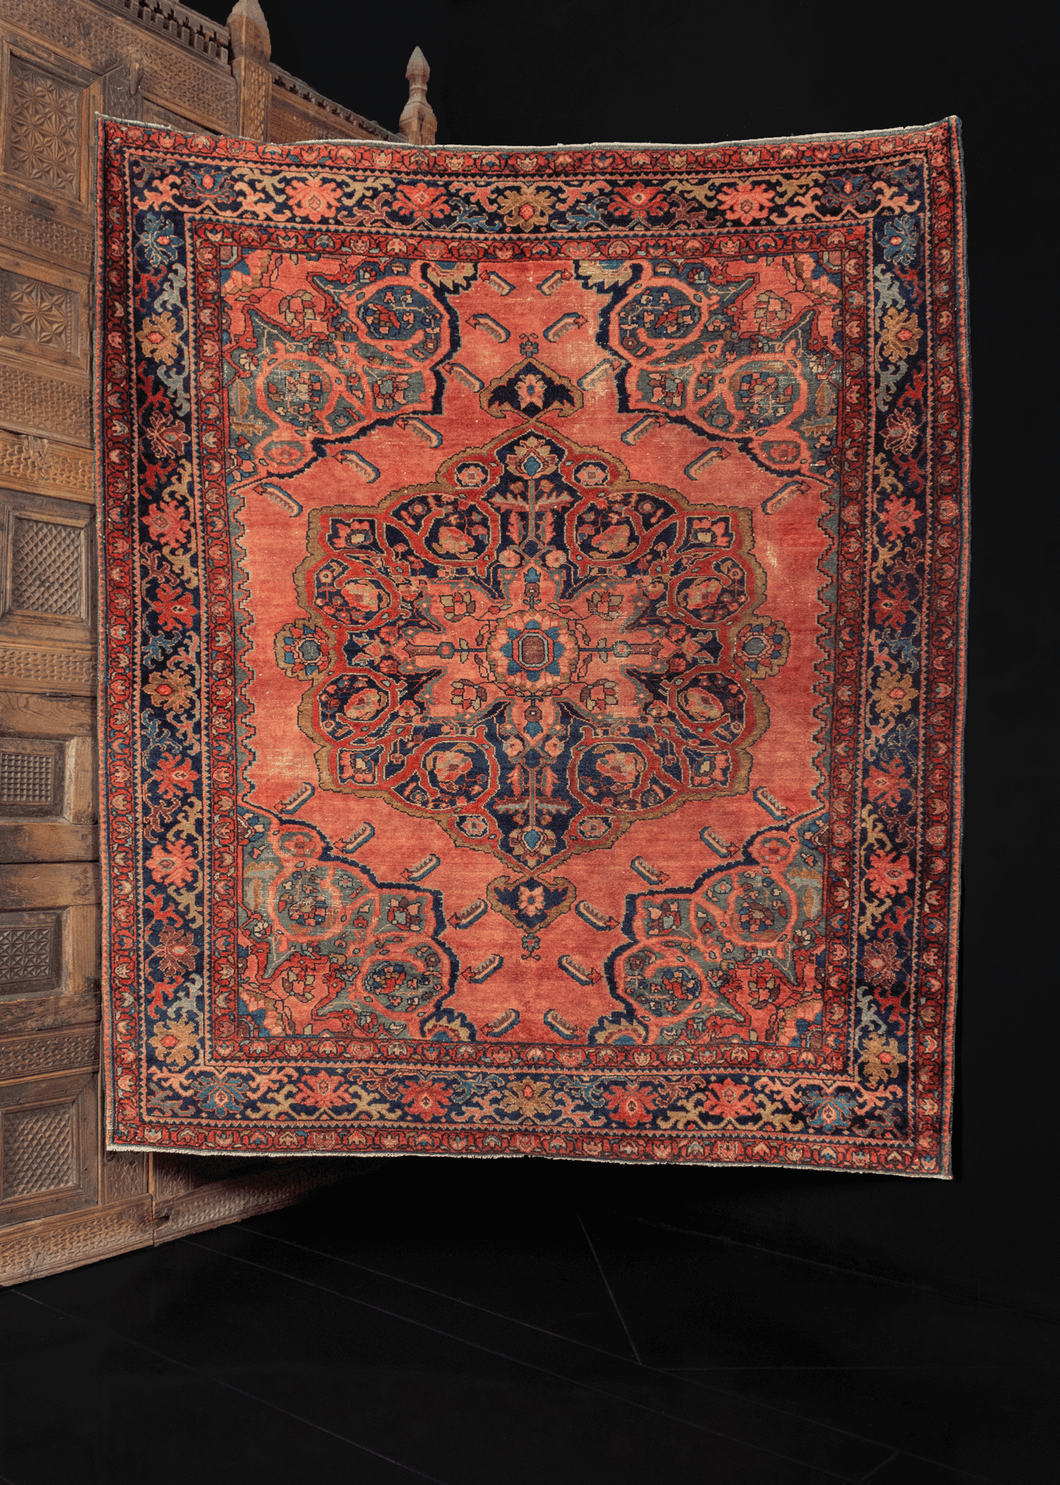 early 20th century lilihan rug from w iran with large central and cornices, with elaborate and unusual borders in peaches, indigo blues, and reds